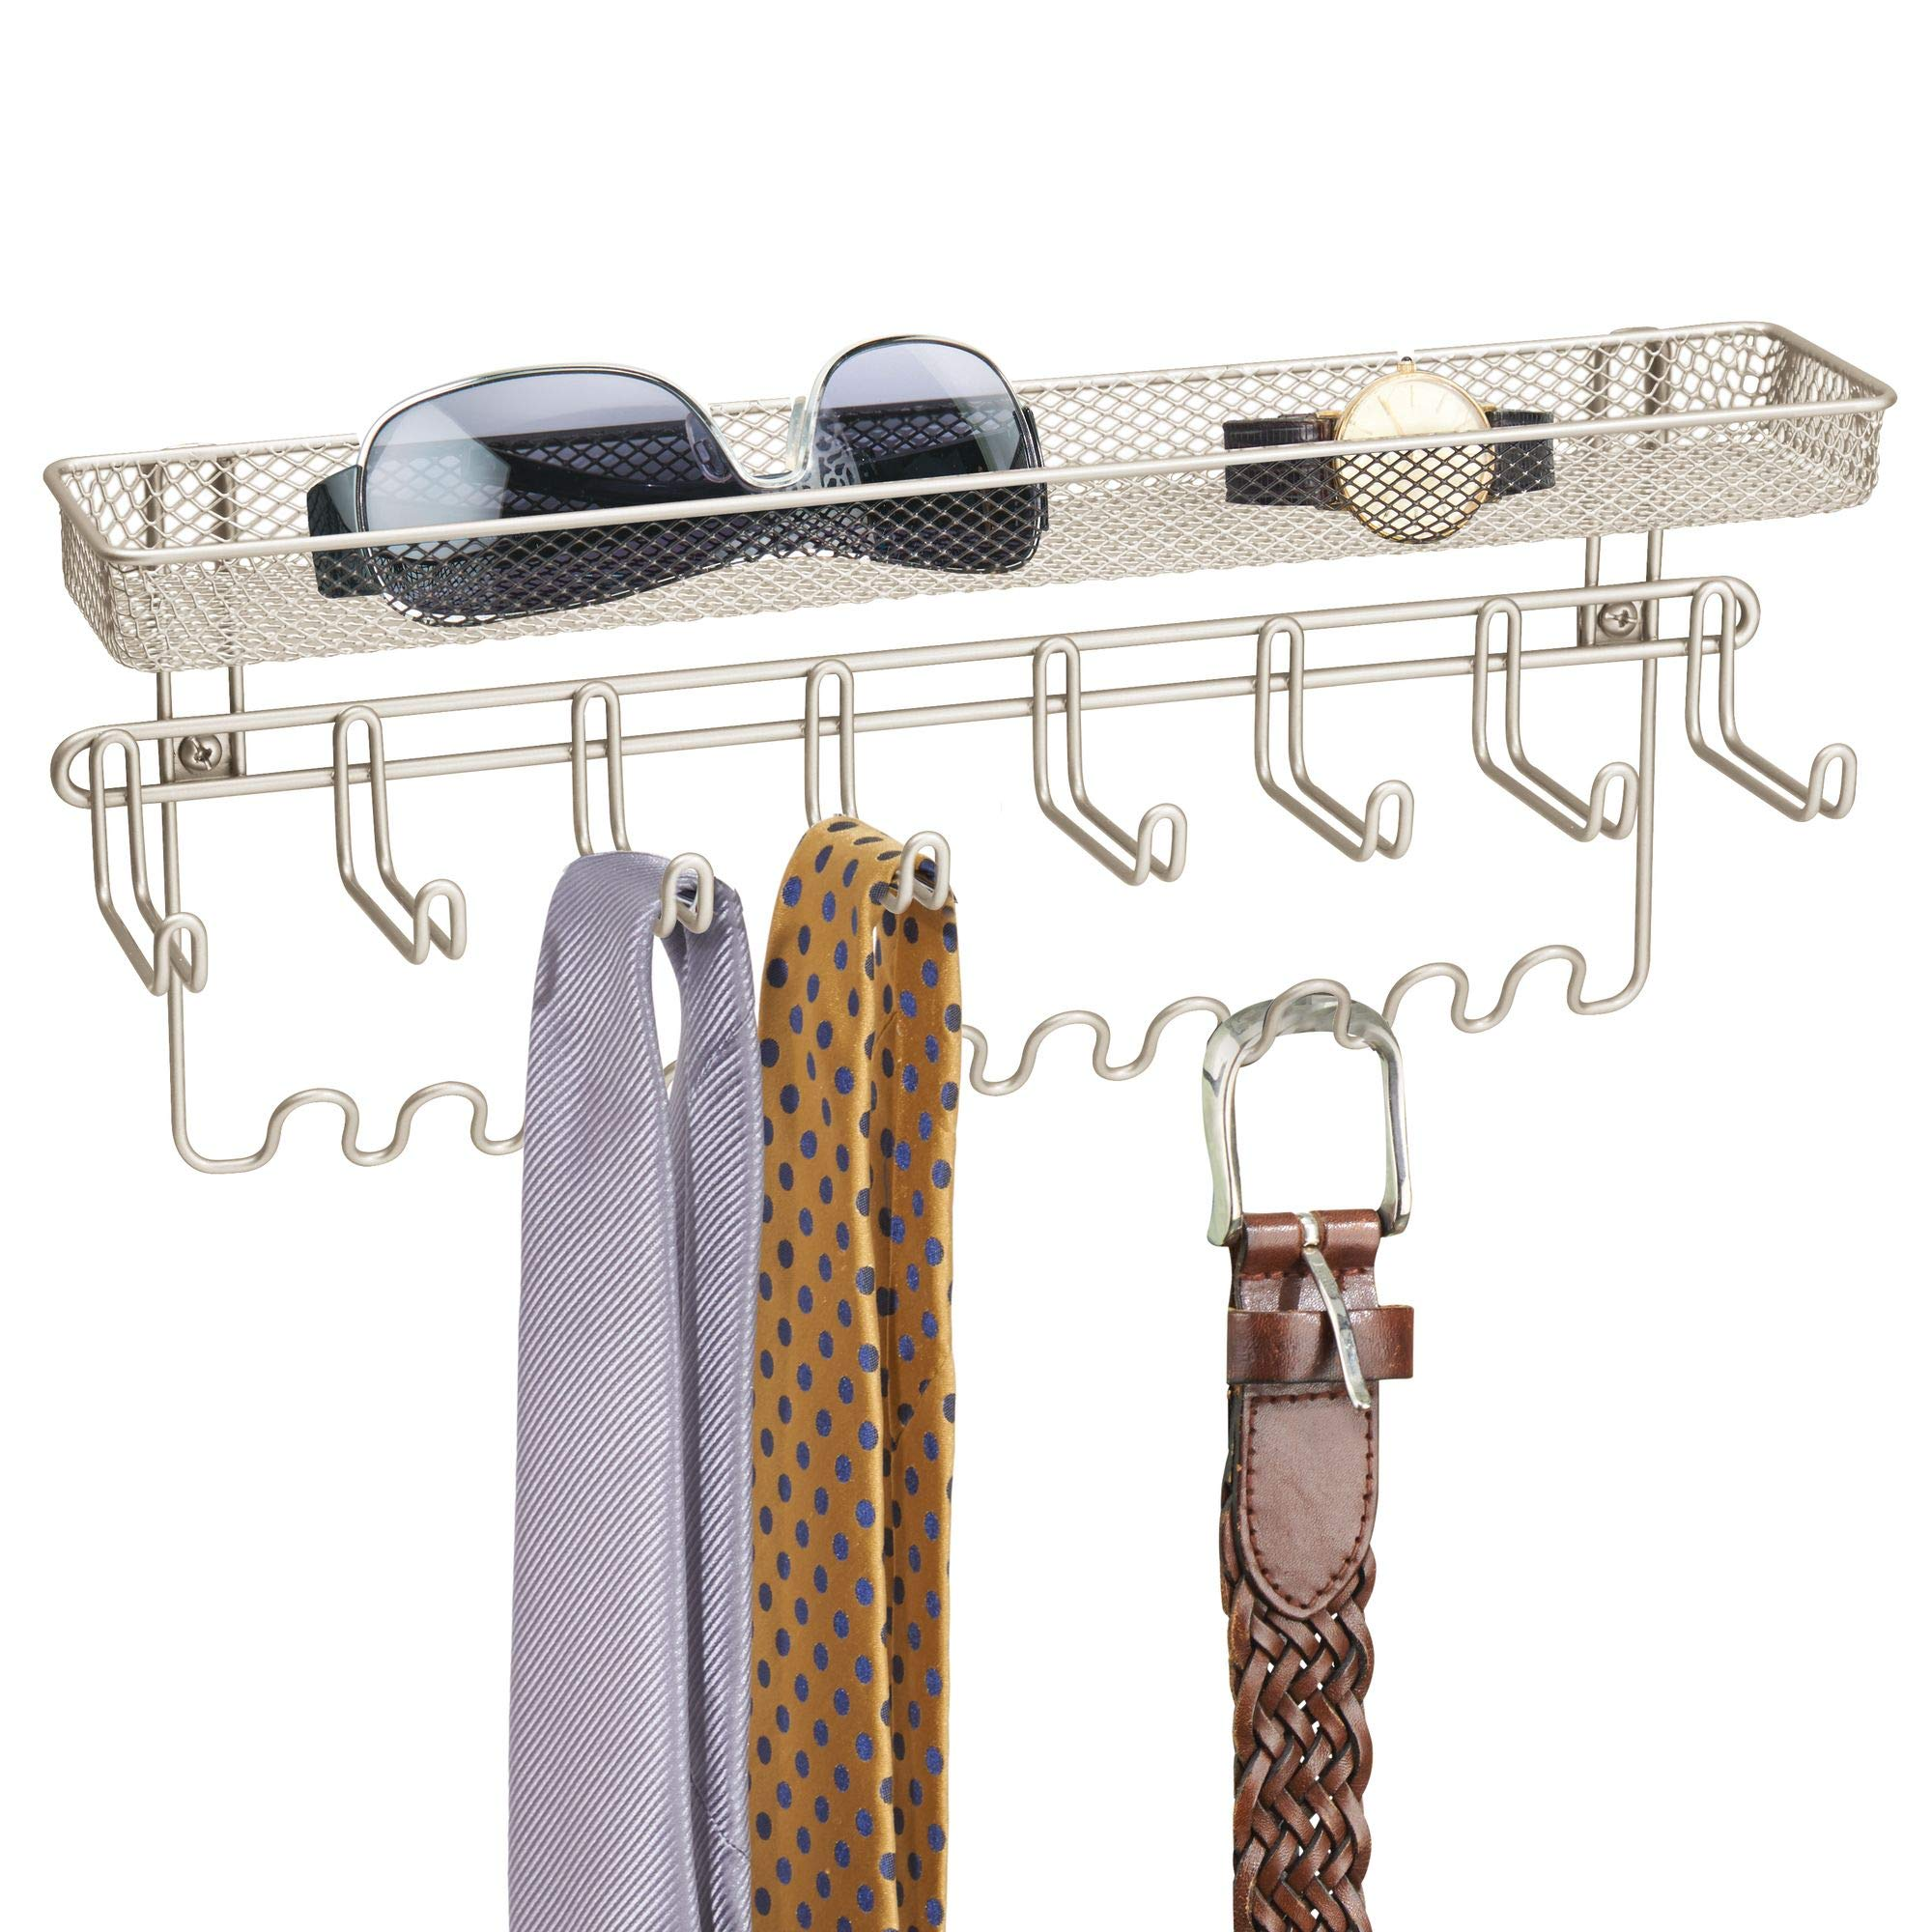 mDesign Closet Wall Mount Jewelry Accessory Organizer and Storage Center for Necklaces, Bracelets, Rings, Earrings, Sunglasses, Wallets - 8 Large Hooks / 11 Small Hooks / 1 Basket, Pack of 2, Satin by mDesign (Image #4)